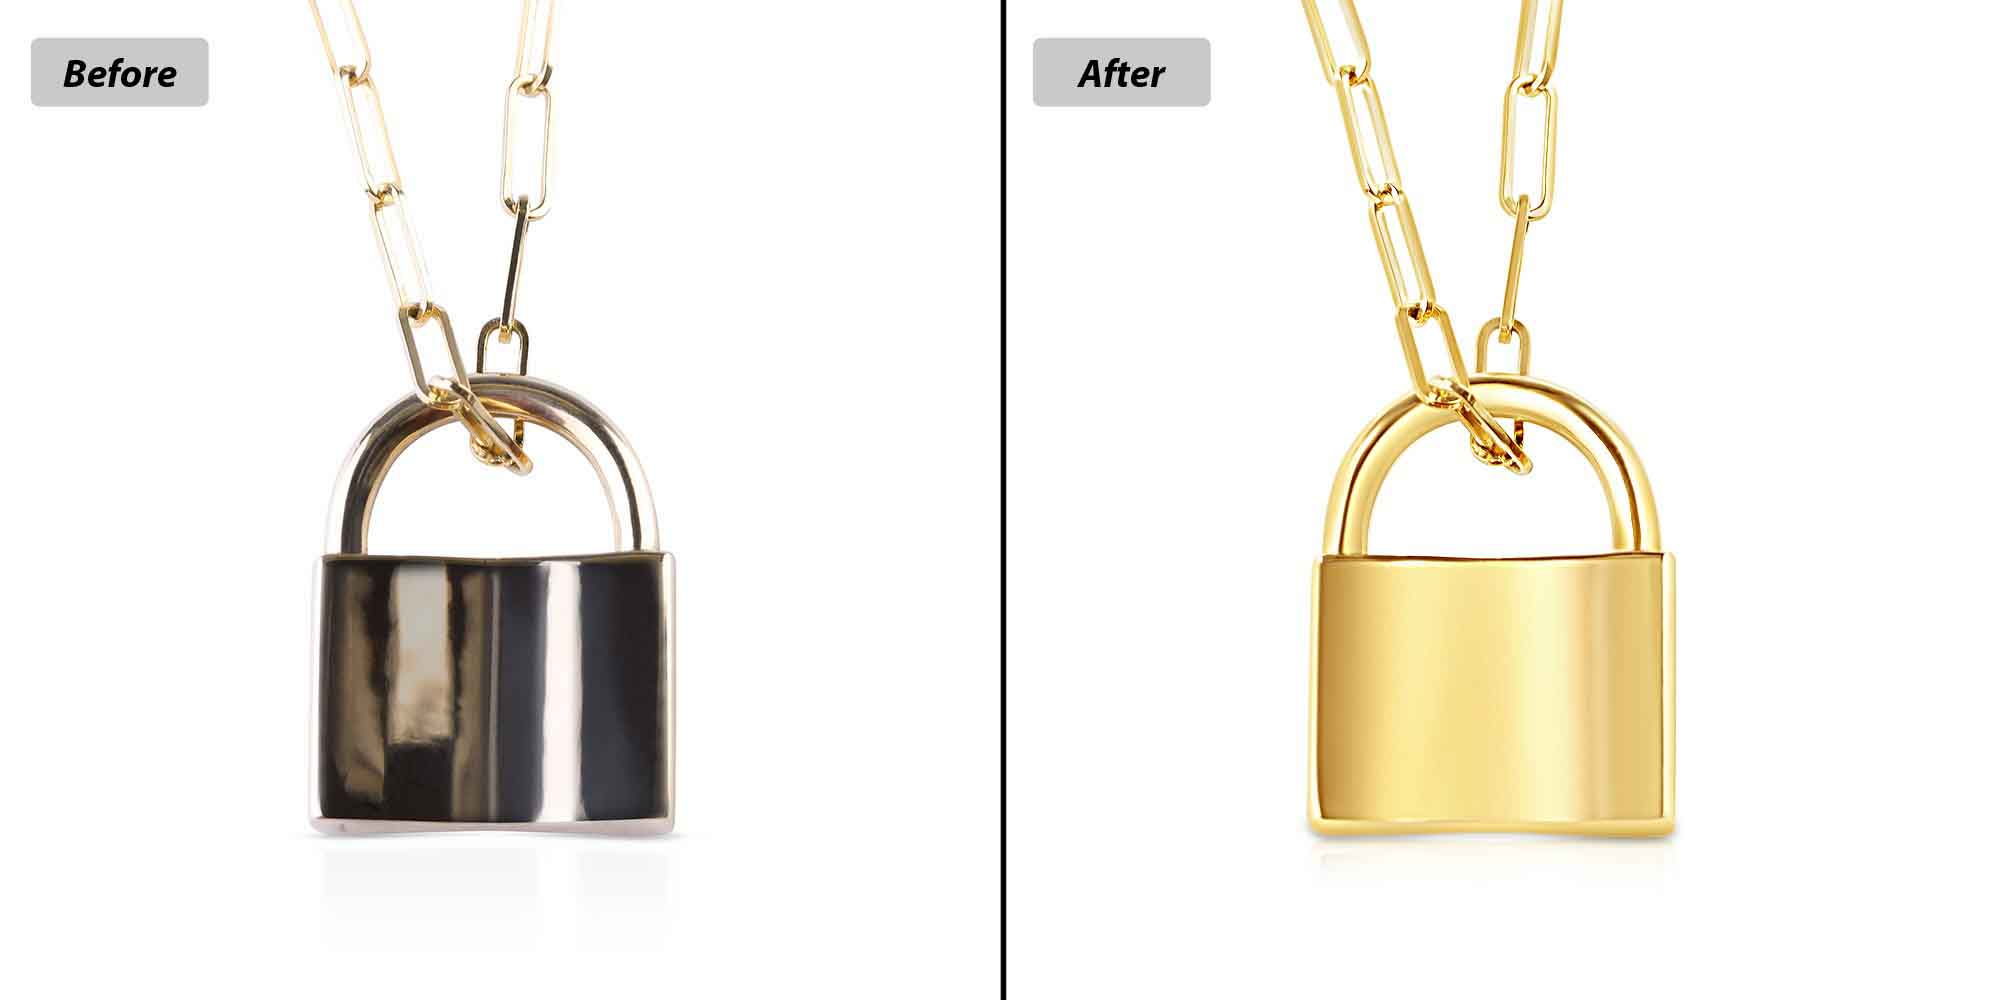 Clipping Charm_Jewellery retouch 0909